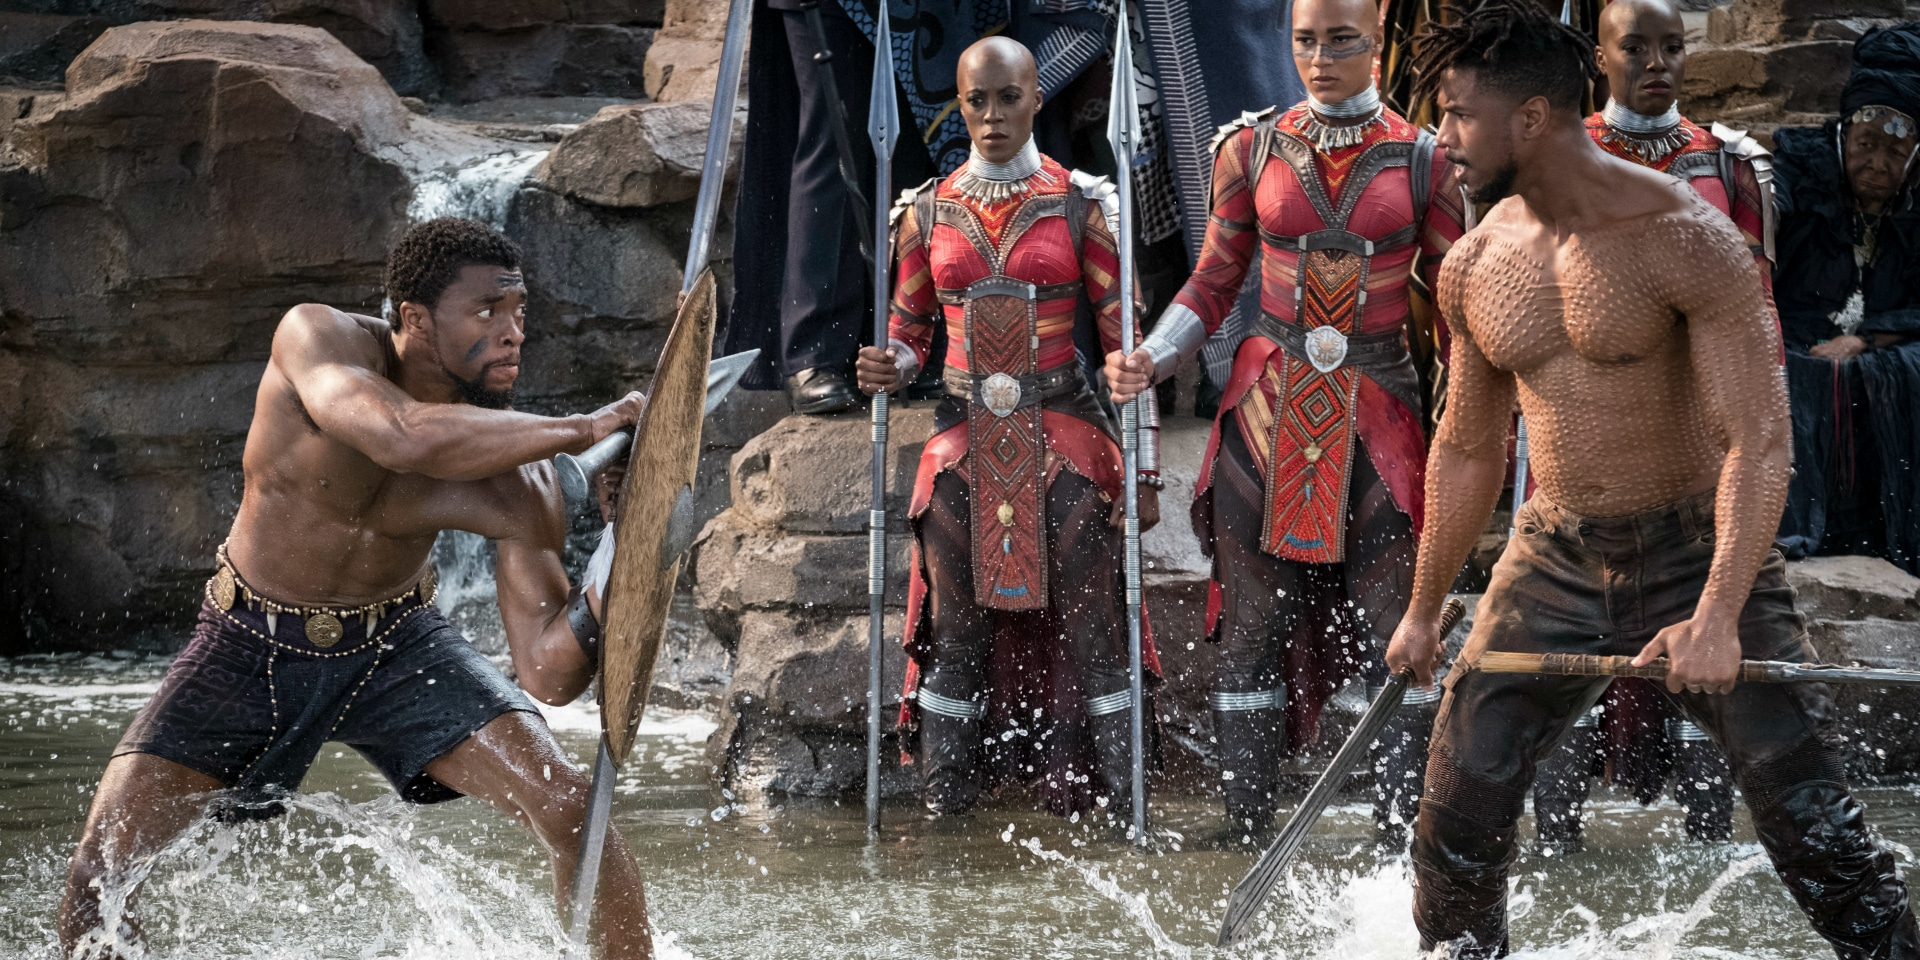 Chadwick Boseman Black Panther Wakanda offers the uncolonized Black country, the meaningful Black superhero as a symbol